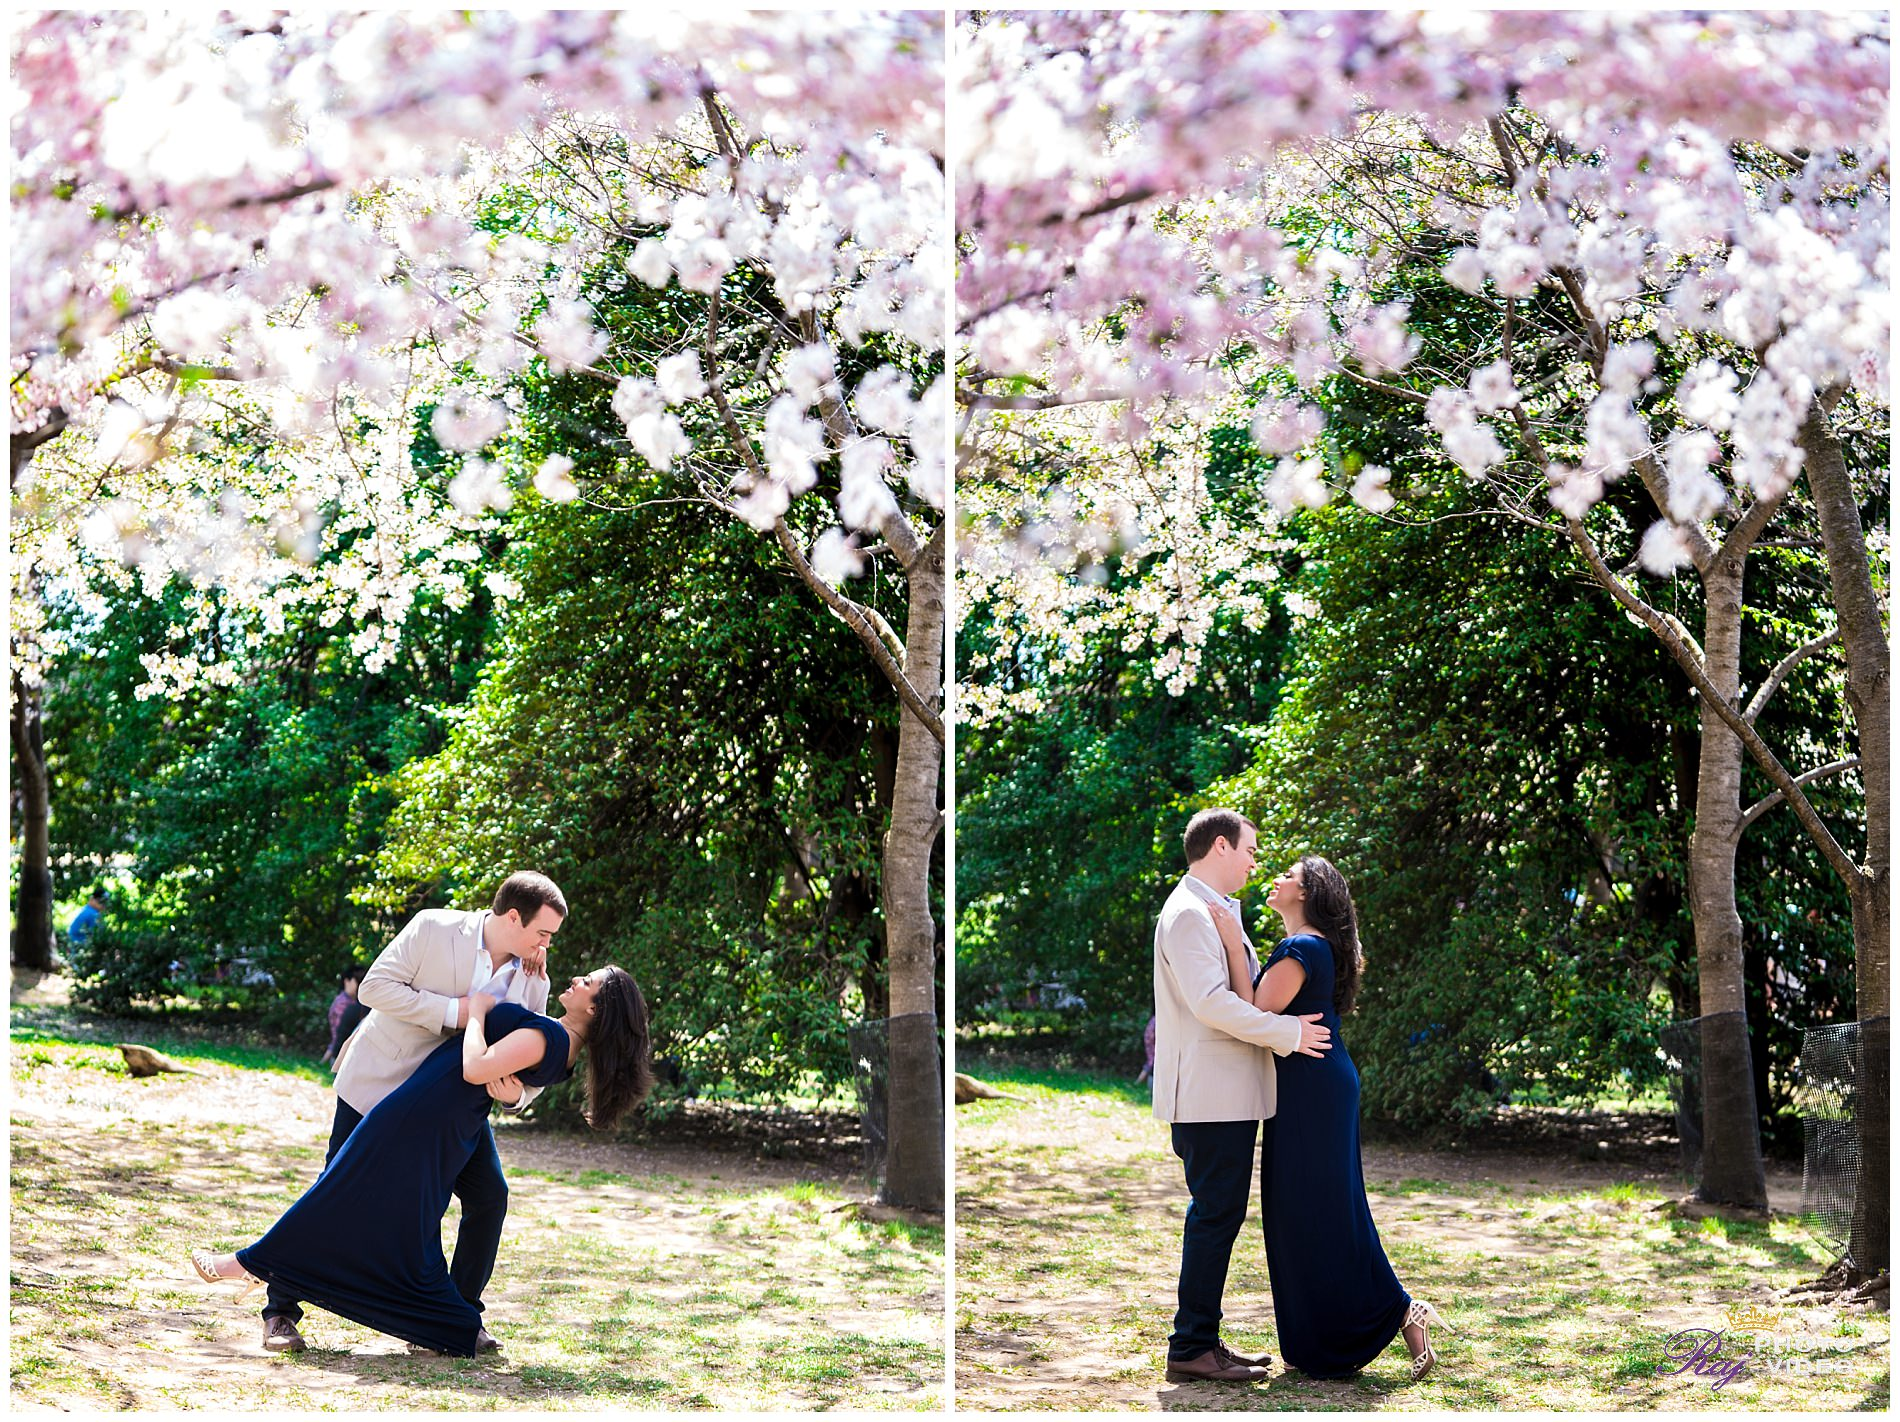 National-Cherry-Blossom-Festival-Washington-DC-Engagement-Shoot-Aditi-Peter-12.jpg